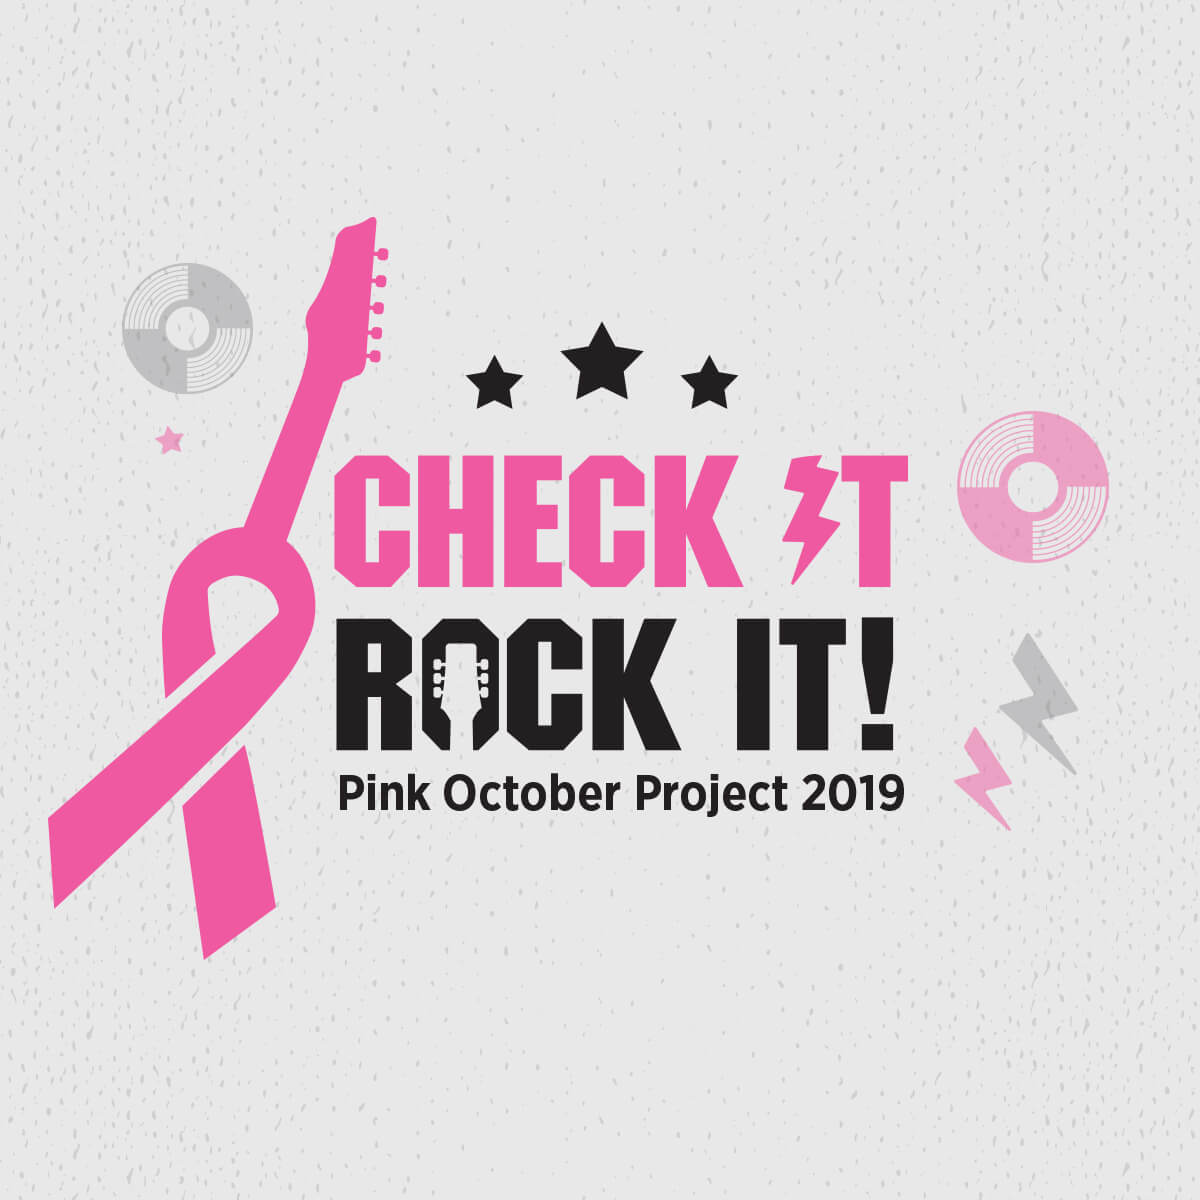 Pink October Project 2019 at Thomson Hospital